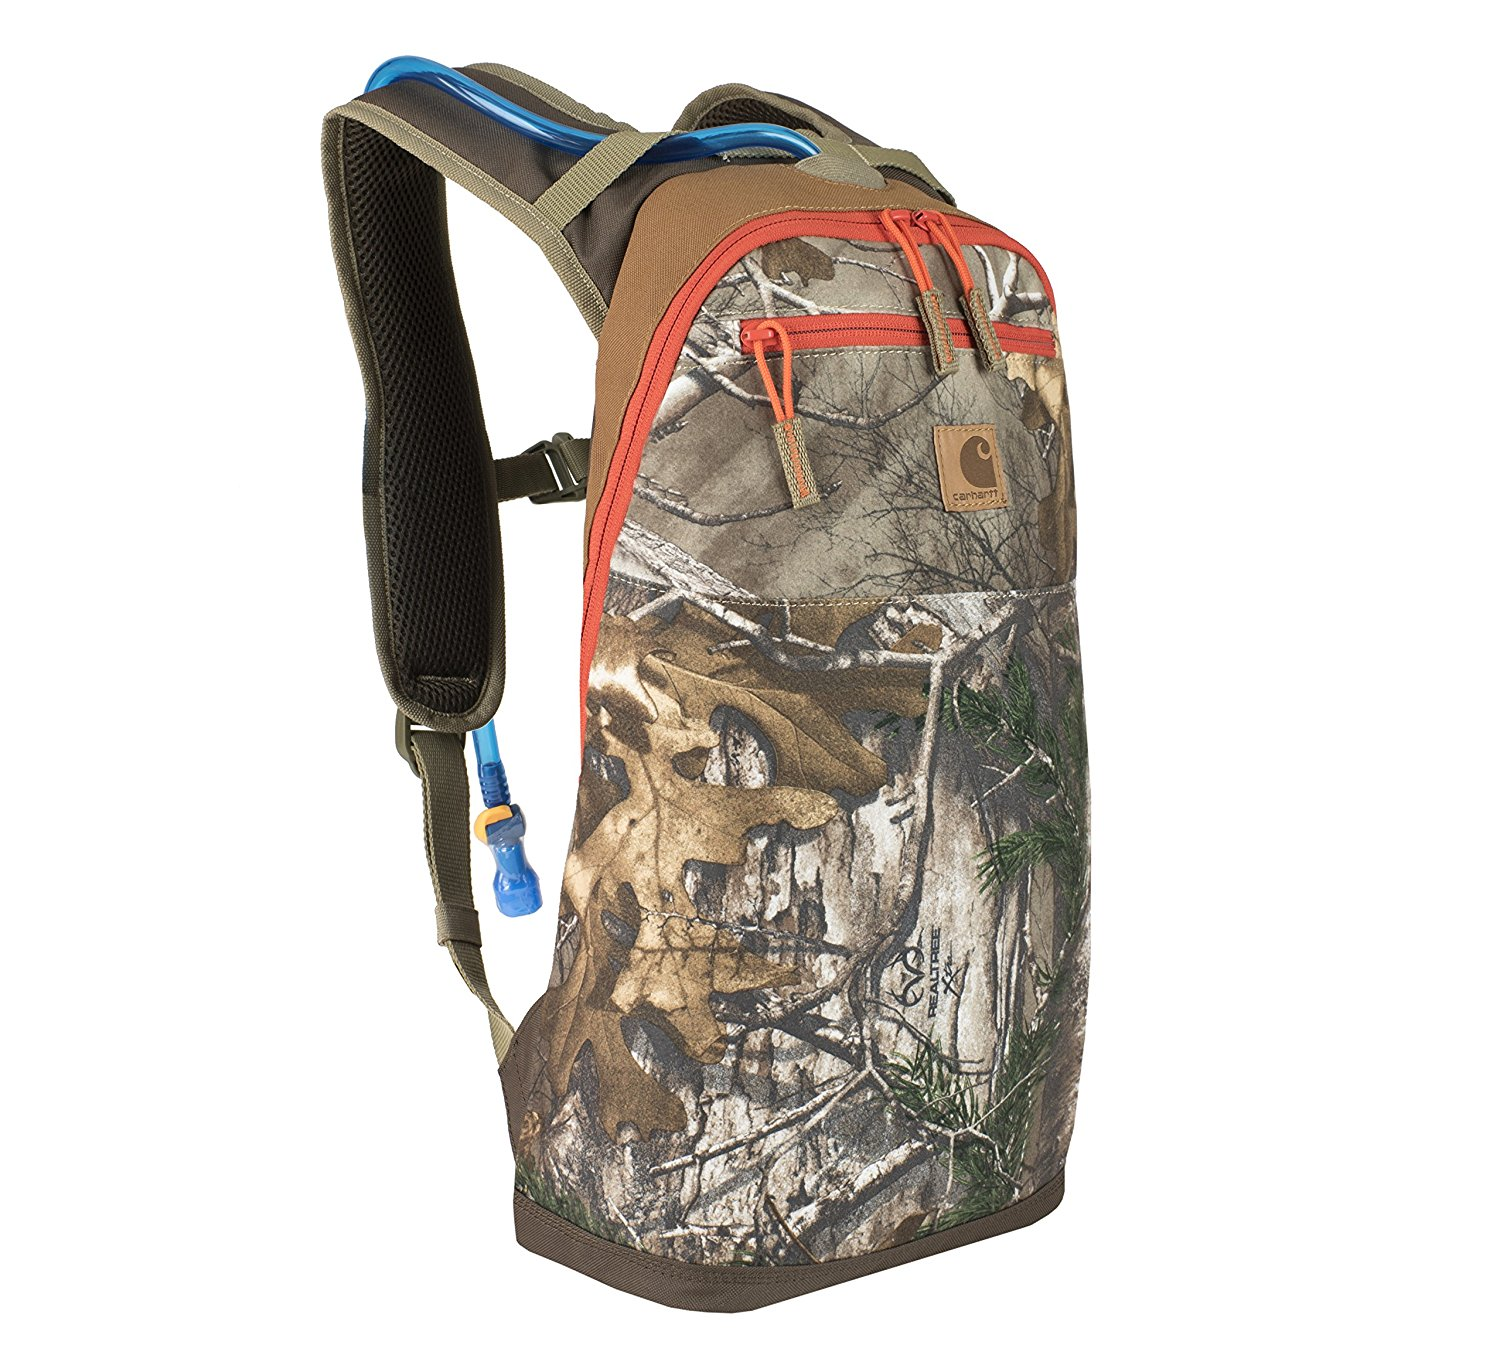 Carhartt Hunt Realtree Camo Hydration Pack with 1.5 Liter Hydration Bladder